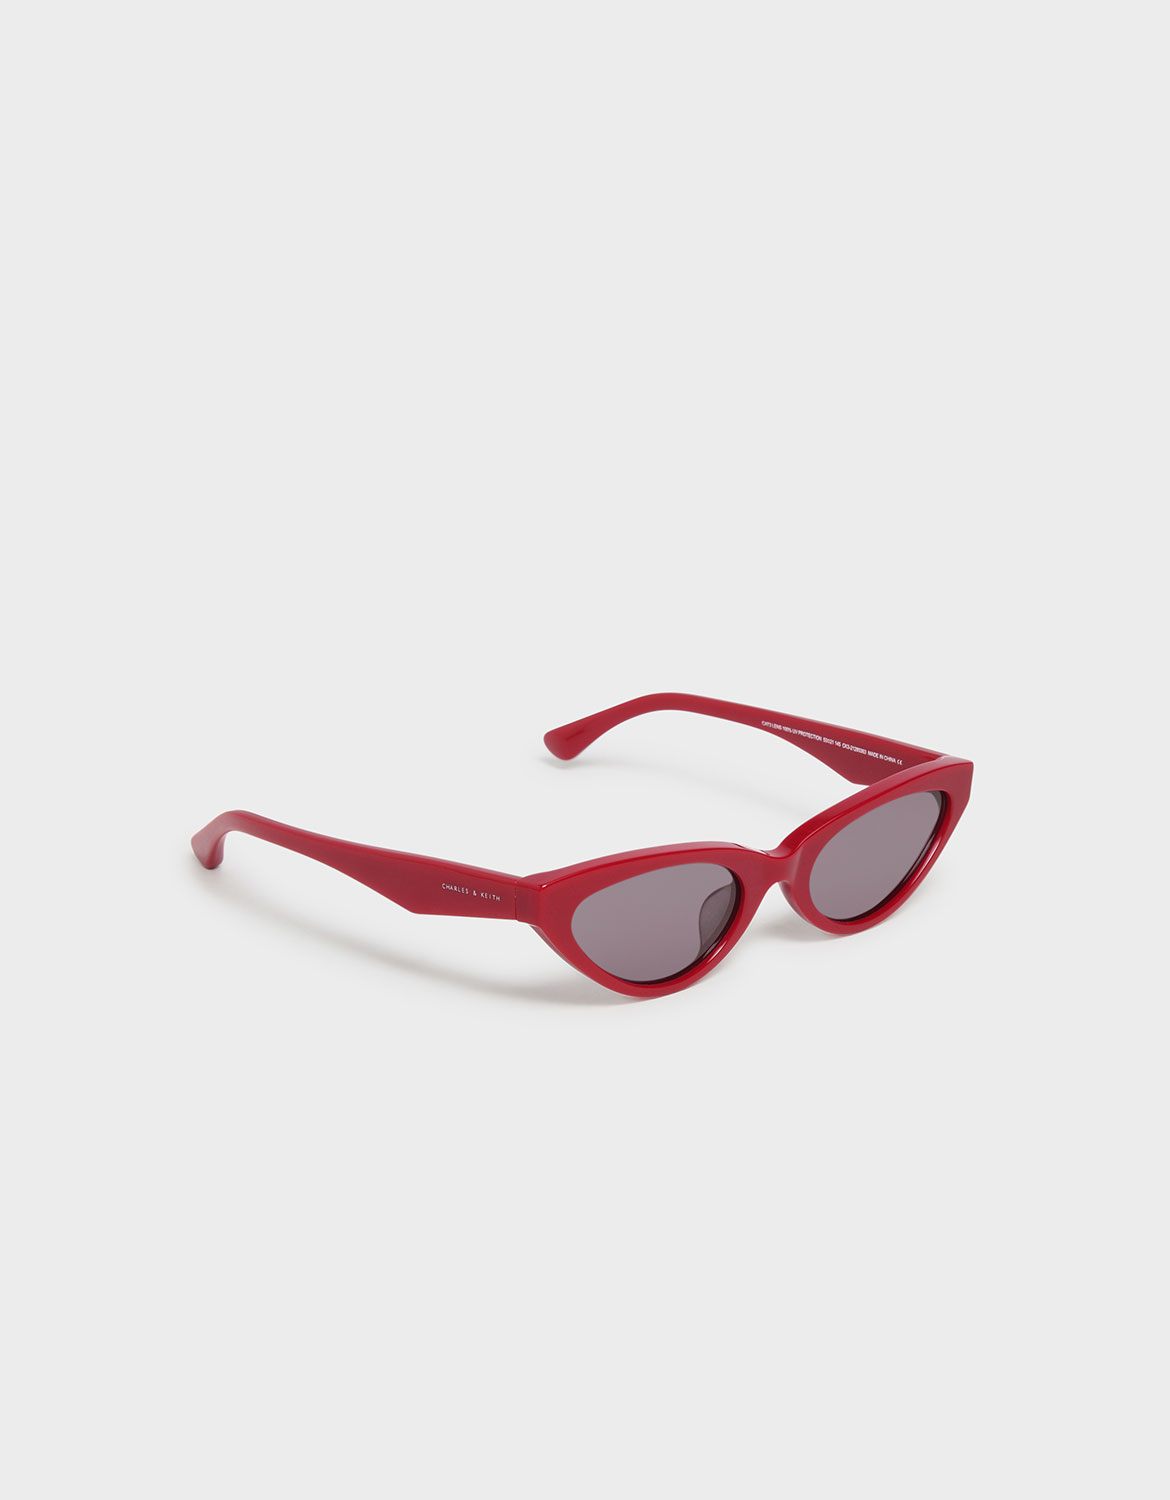 Women's Acetate Oval Frame Sunglasses in red - CHARLES & KEITH